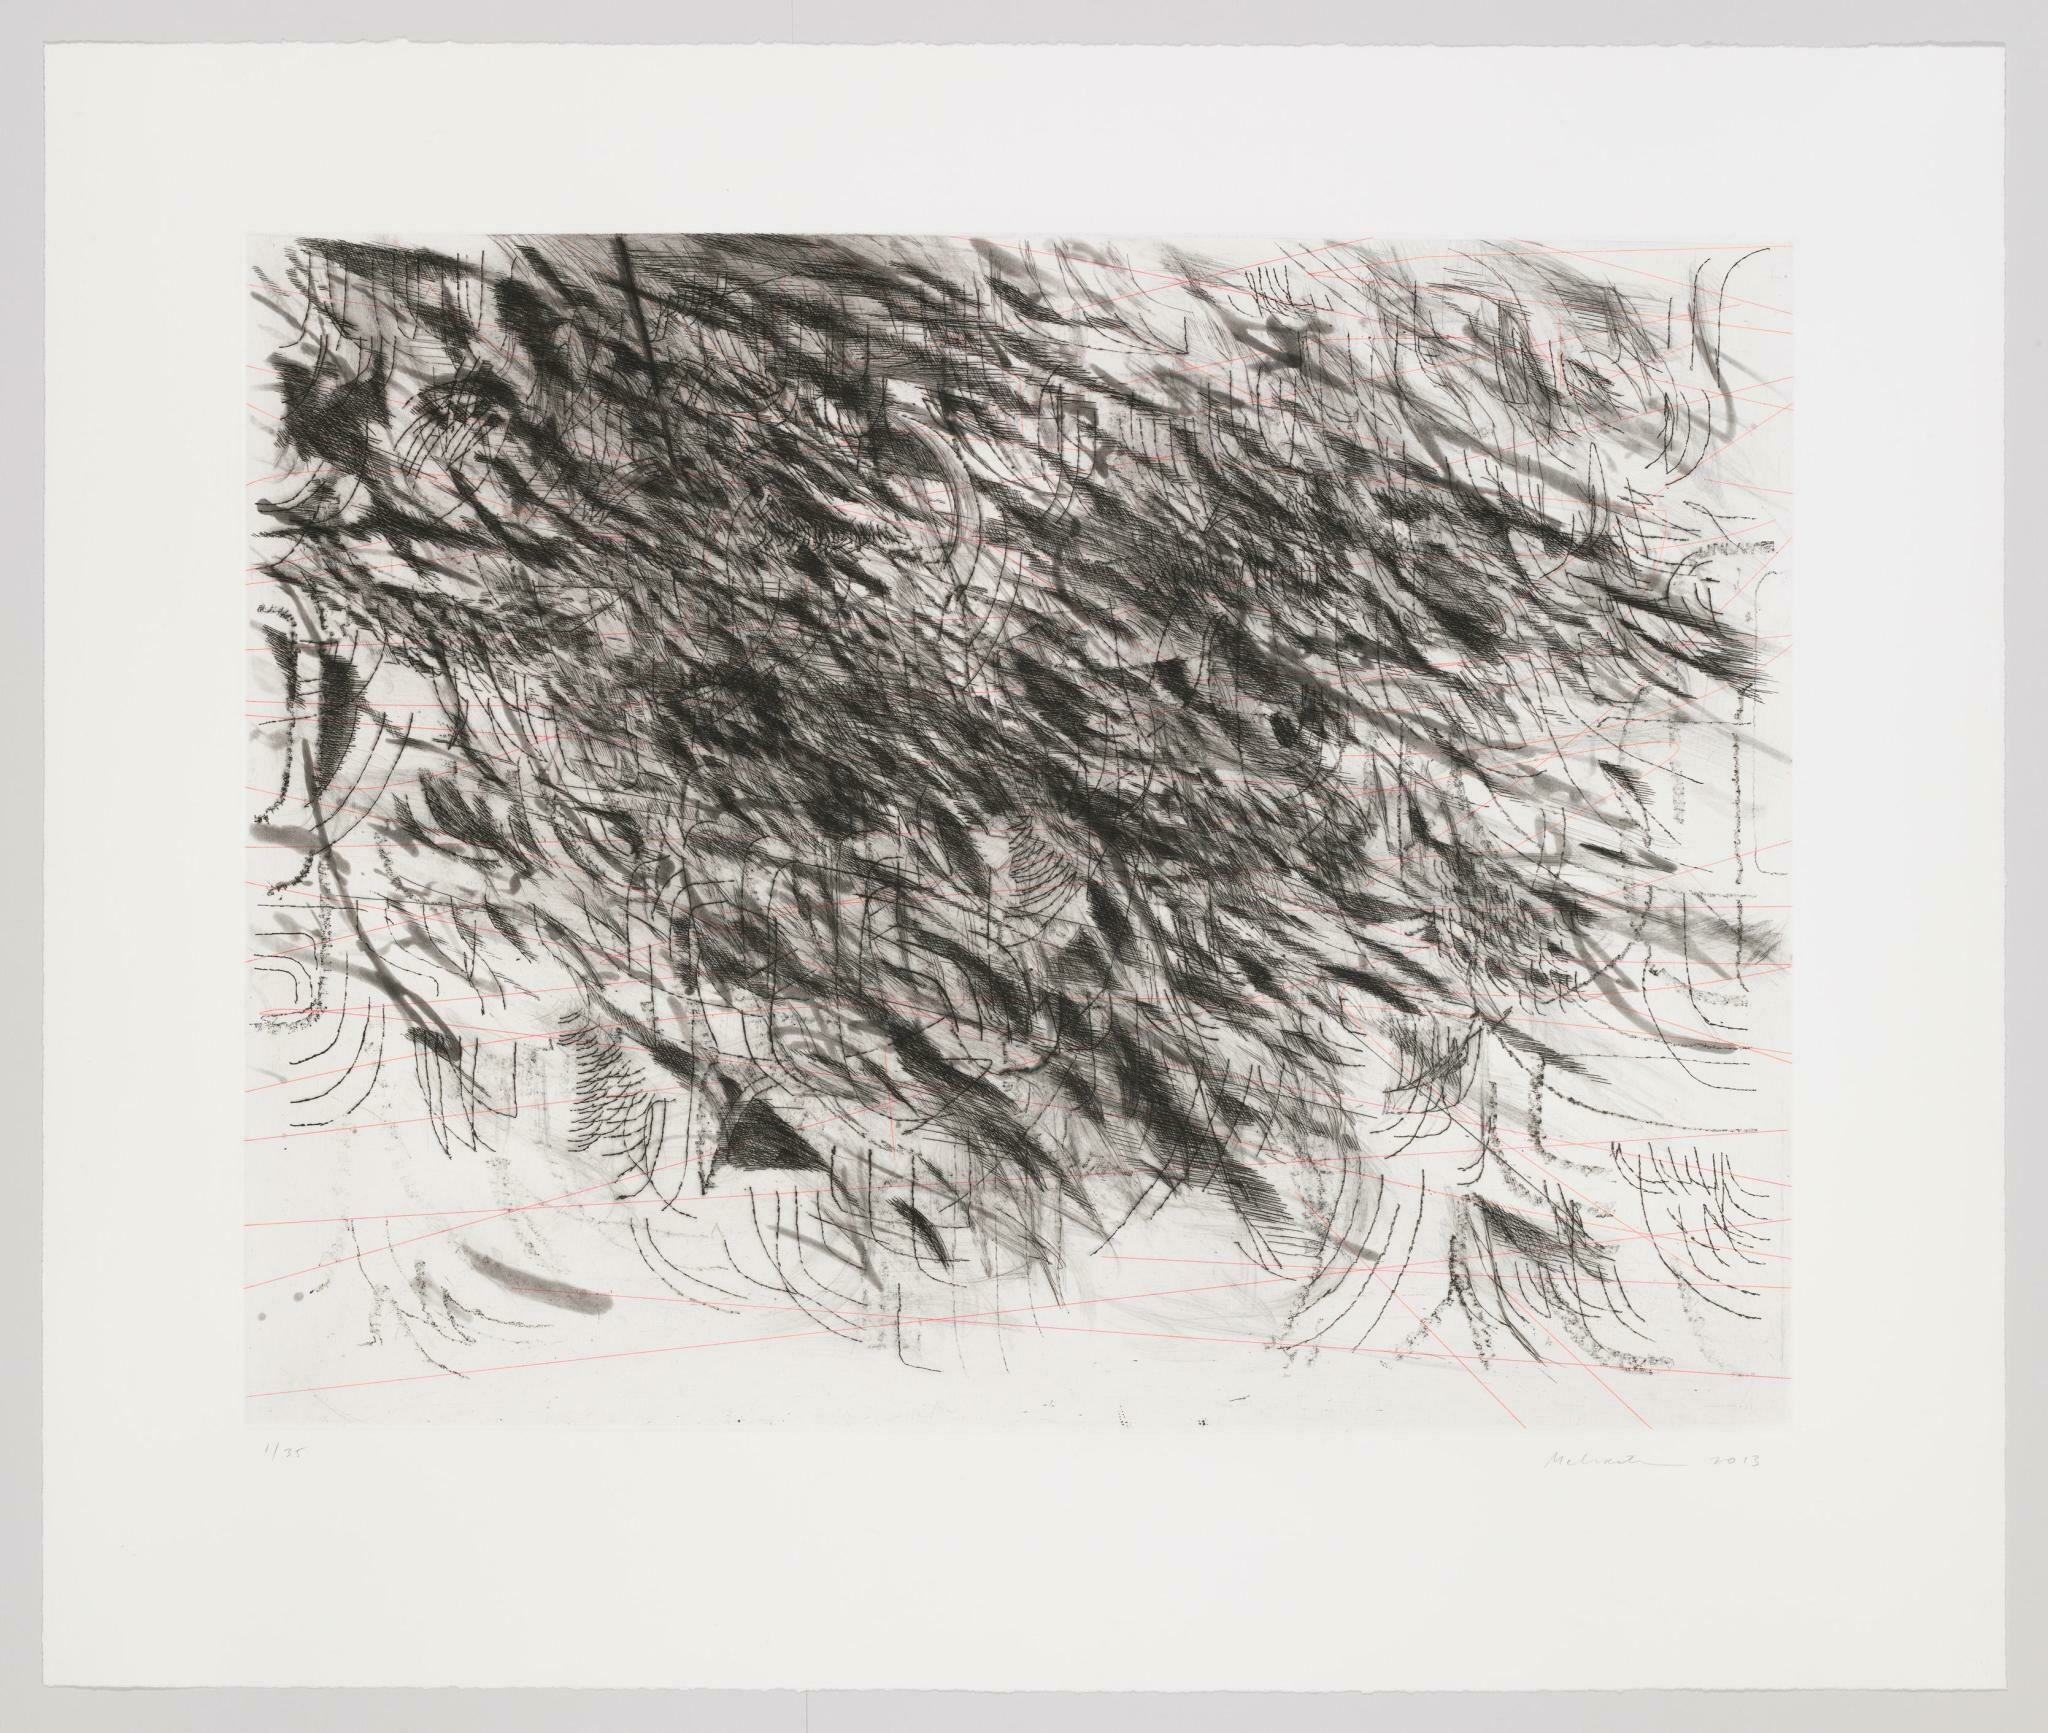 small and sweeping charcoal etchings splay out across a canvass amidst straight pink lines